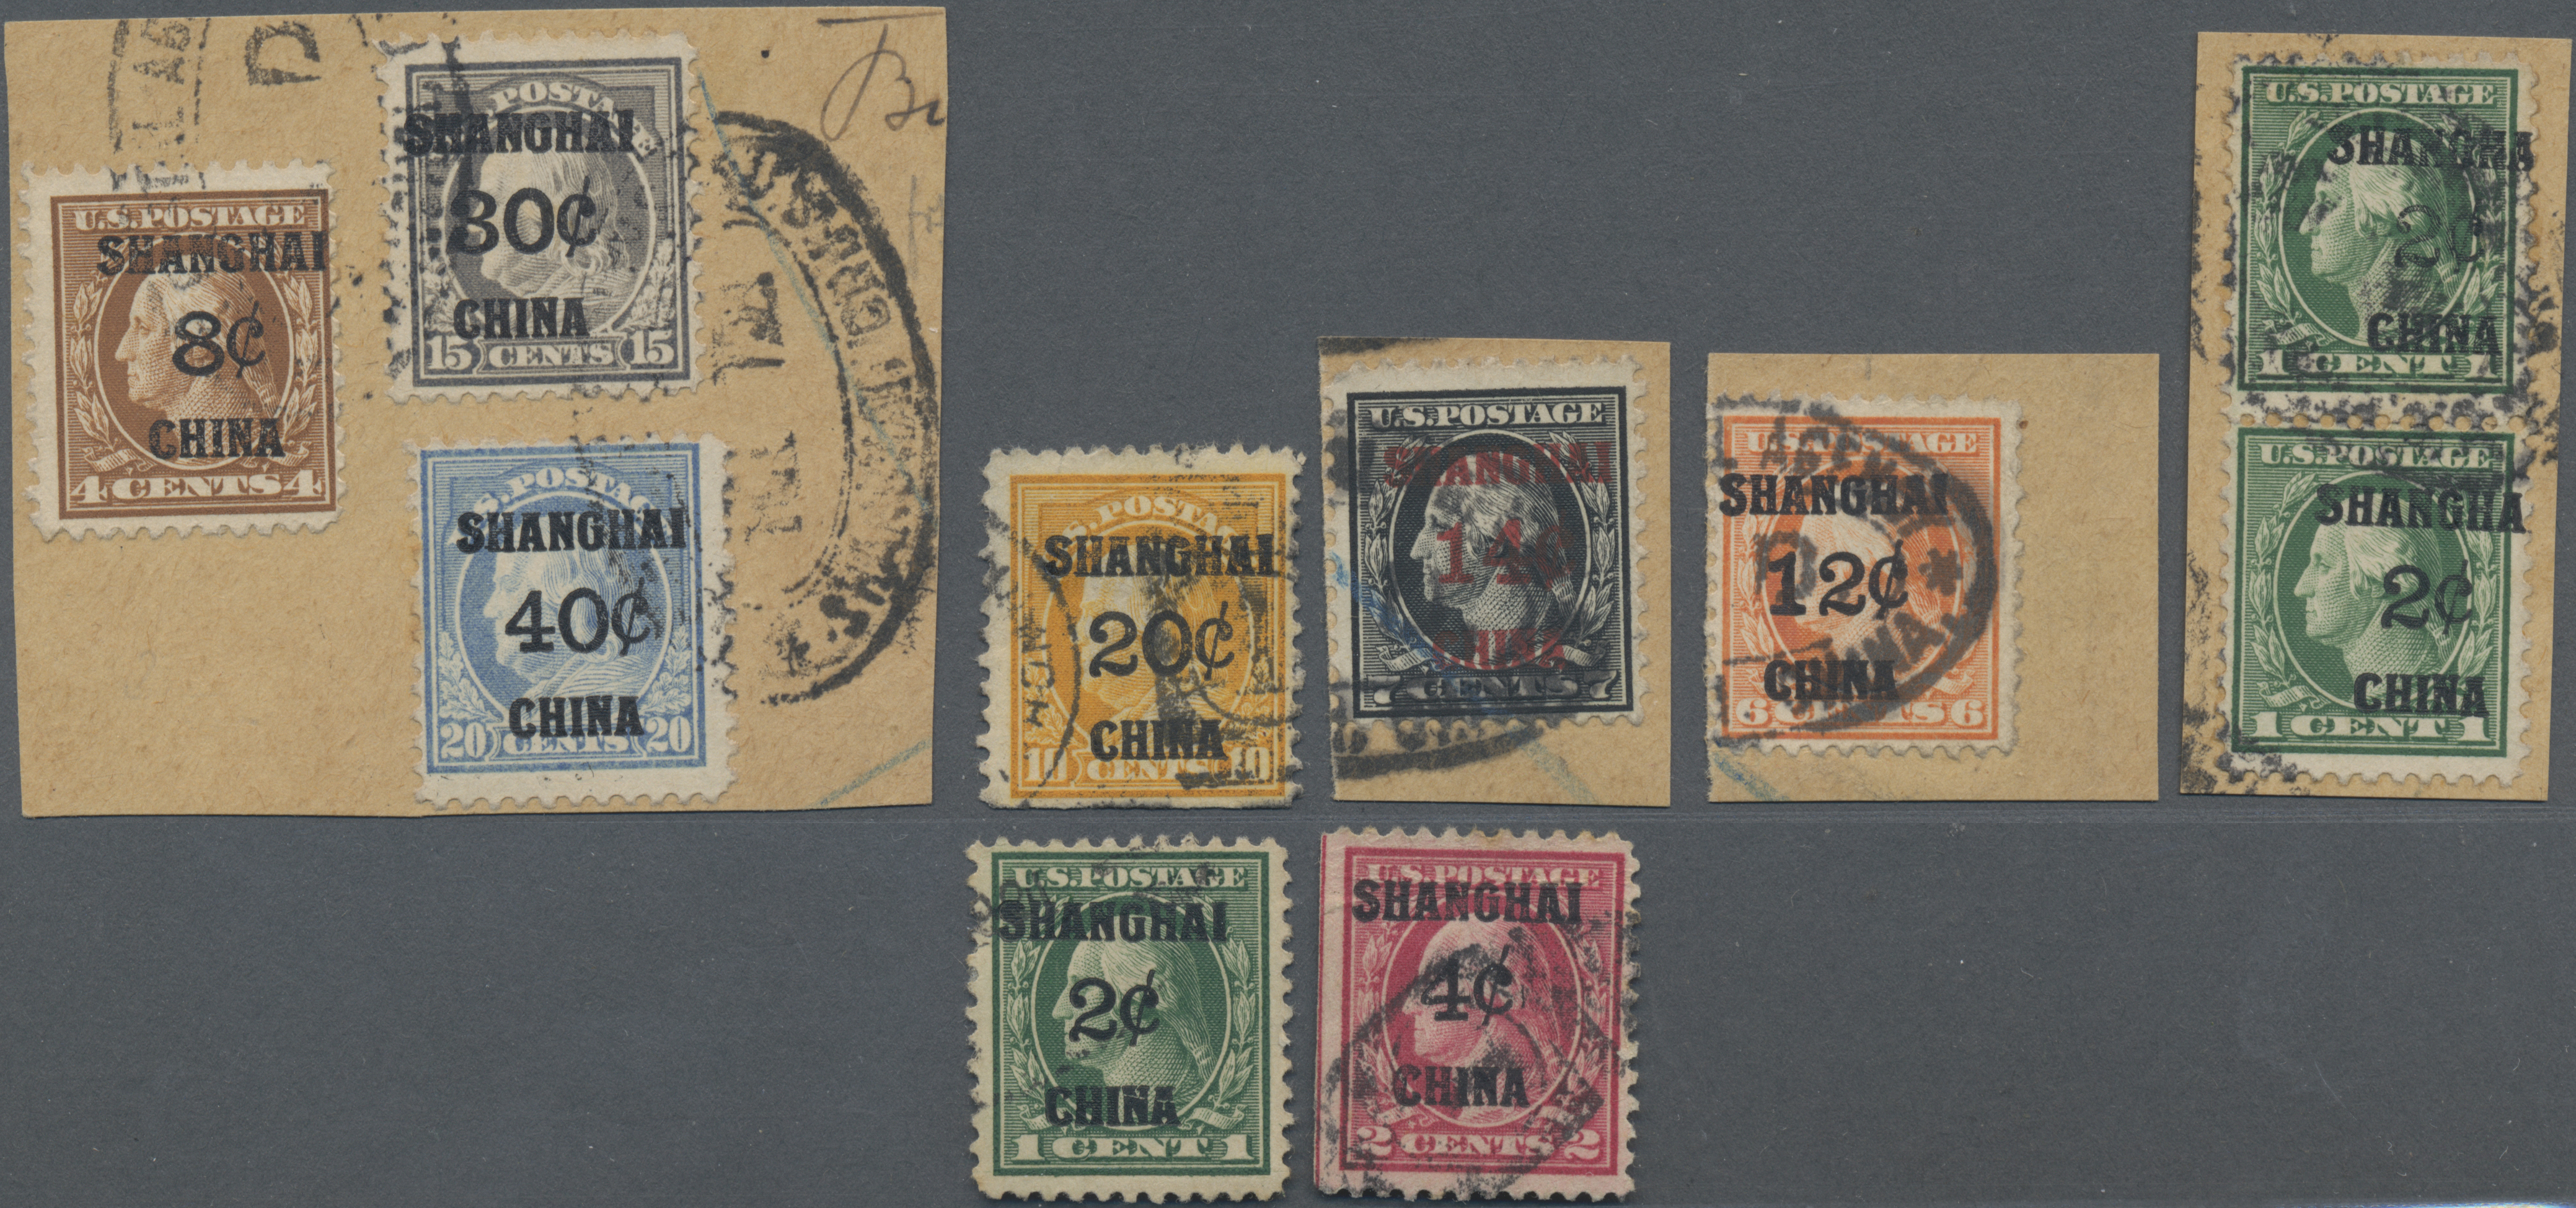 Lot 34593 - China - Fremde Postanstalten / Foreign Offices  -  Auktionshaus Christoph Gärtner GmbH & Co. KG Sale #44 Collections Germany